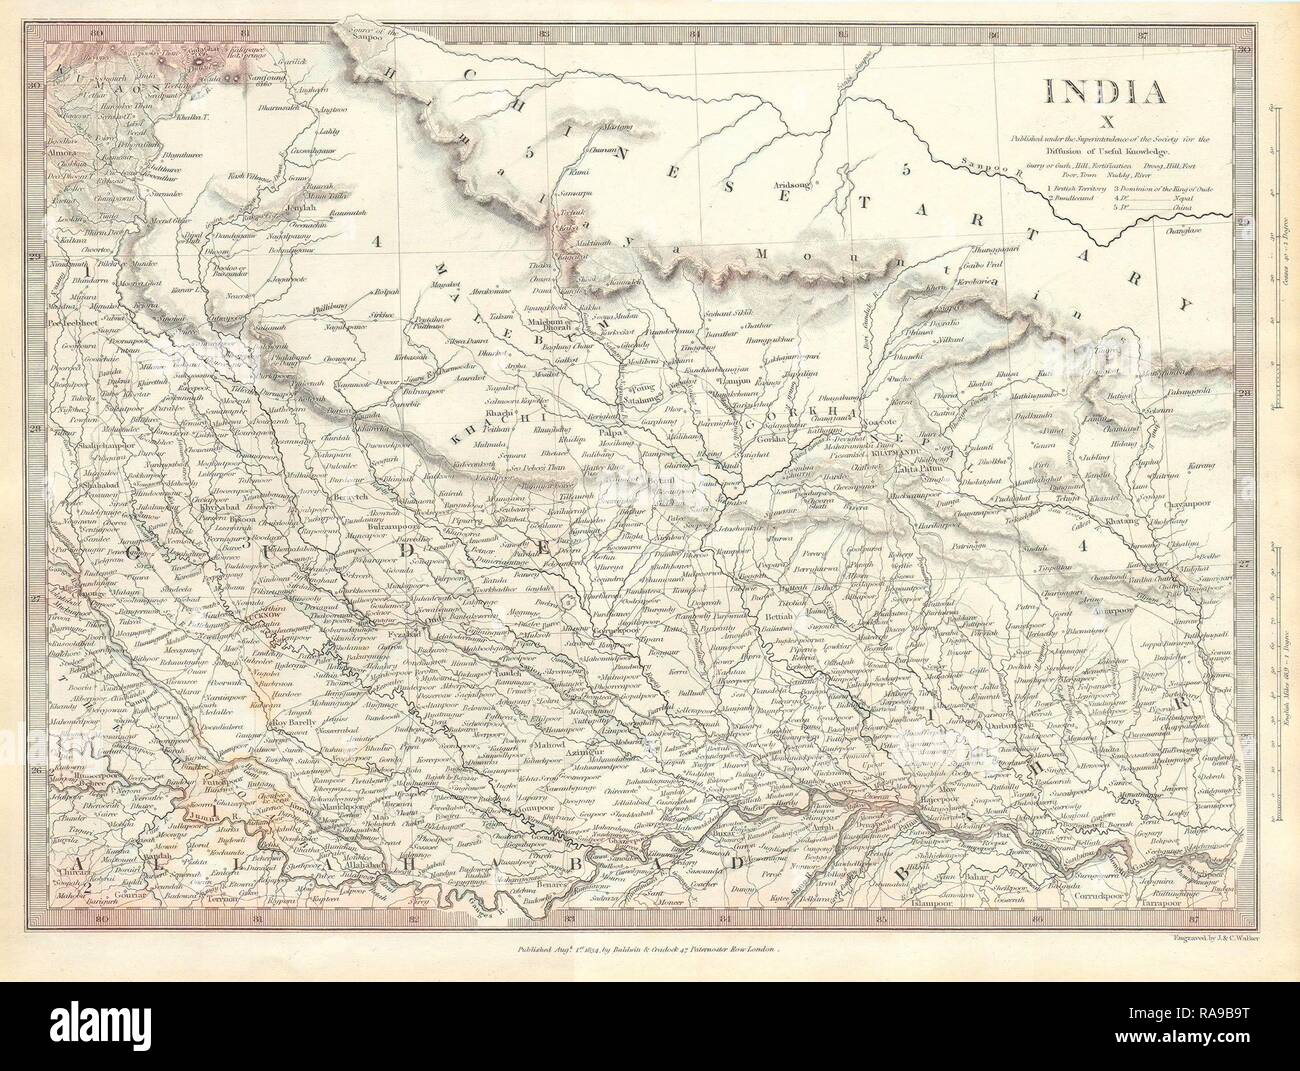 1834, S.D.U.K. Map of North India, Nepal, and Allahabad. Reimagined by Gibon. Classic art with a modern twist reimagined - Stock Image